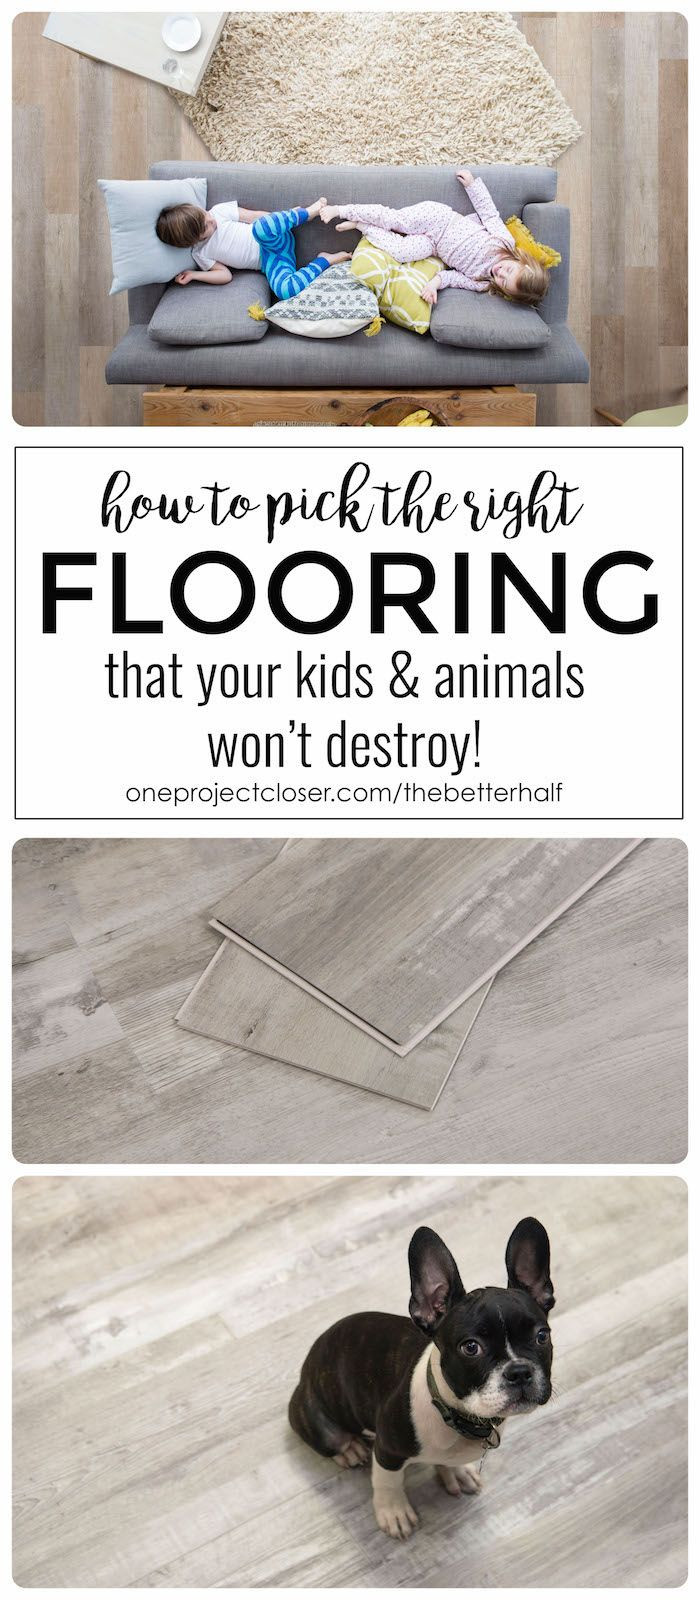 16 Awesome Laminate Flooring Vs Hardwood Resale Value 2021 free download laminate flooring vs hardwood resale value of 1332 best barn wood floors images on pinterest my house slab pertaining to how to pick the right flooring